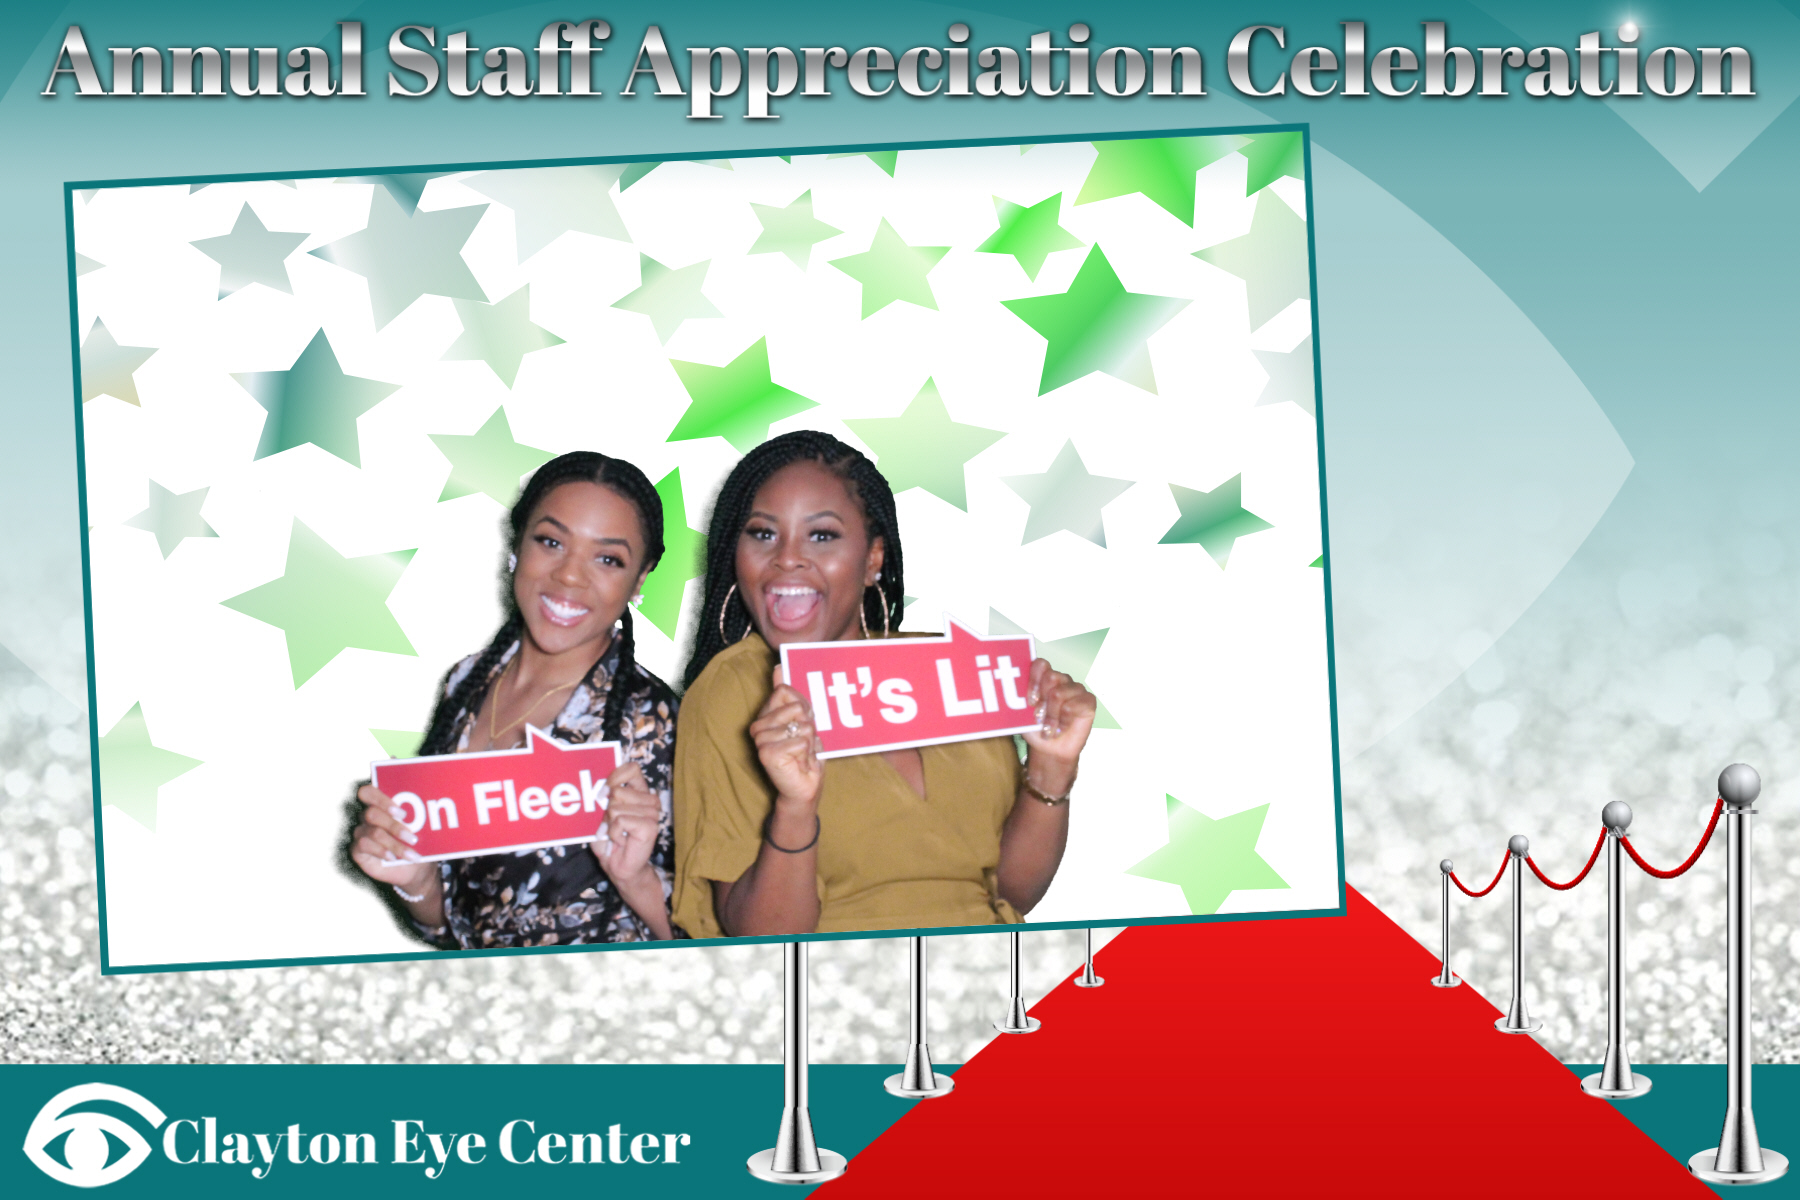 Clayton Eye Center (Stars)